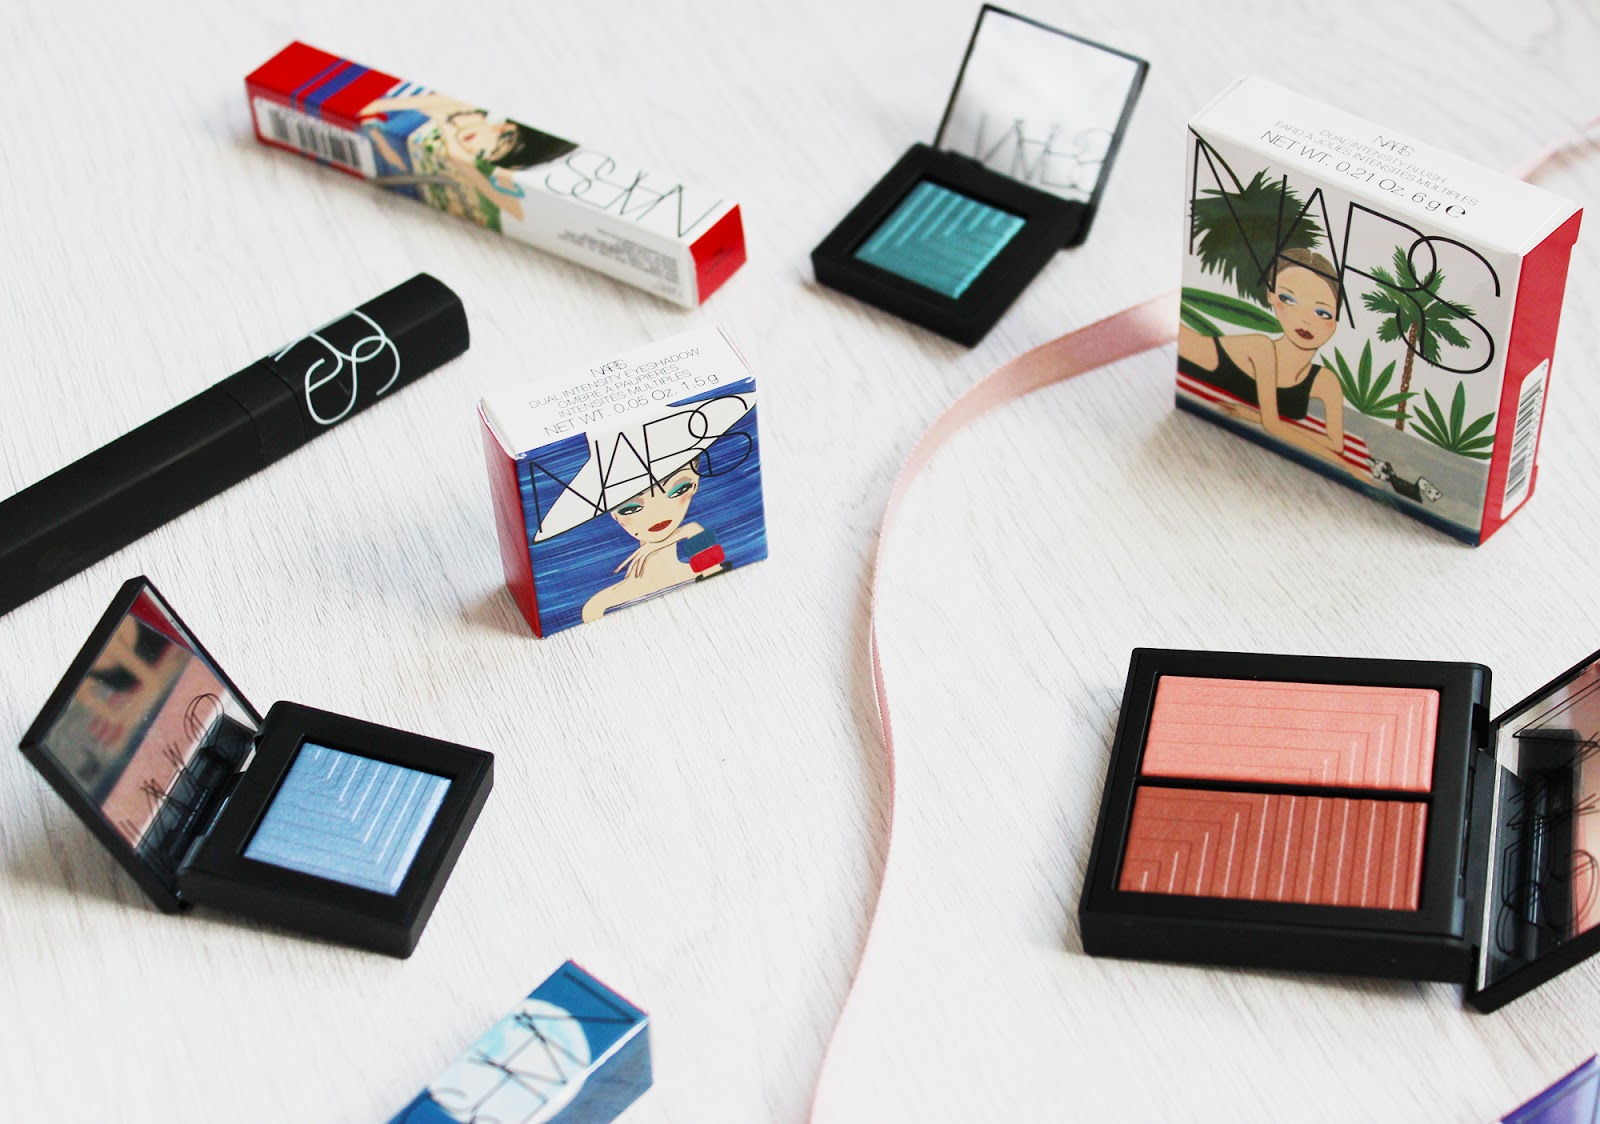 NARS Under Cover summer collection review and swatches on pale skin